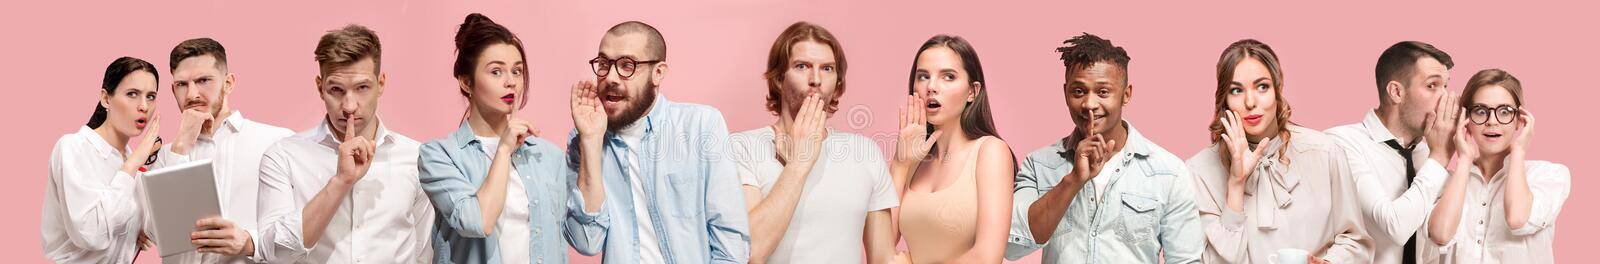 Young men and women whispering a secret on pink background royalty free stock photo